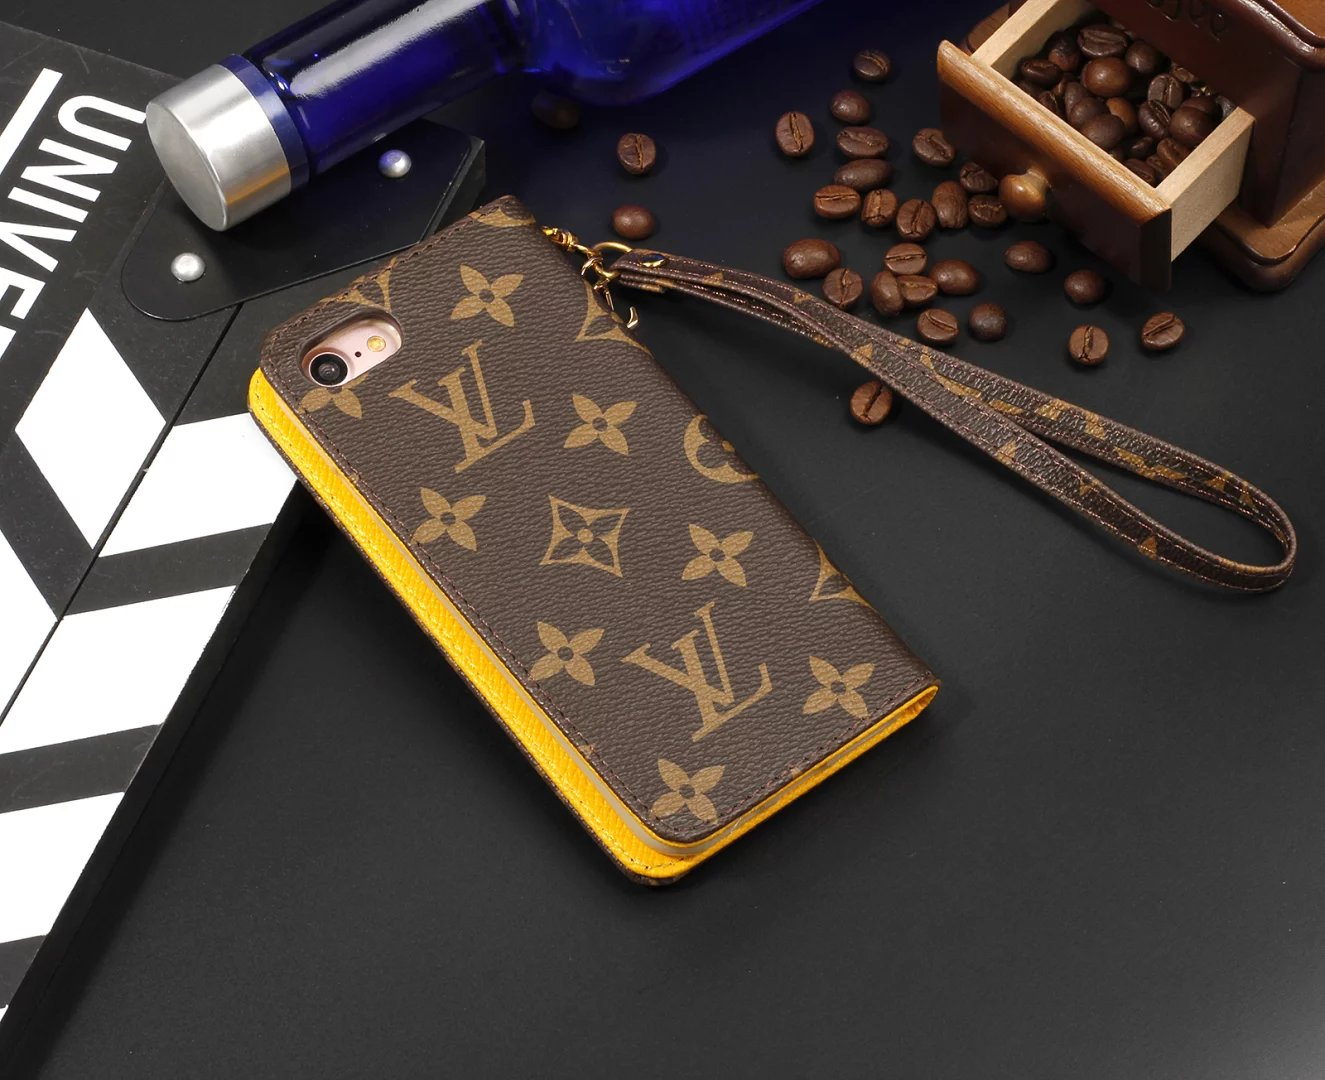 top rated iphone 6 cases iphone 6 personalized cases fashion iphone6 case ipod 6 skins cover on cell phone cases iphone 6 case photo iphone leather case cheap iphone cases iphone premium cases